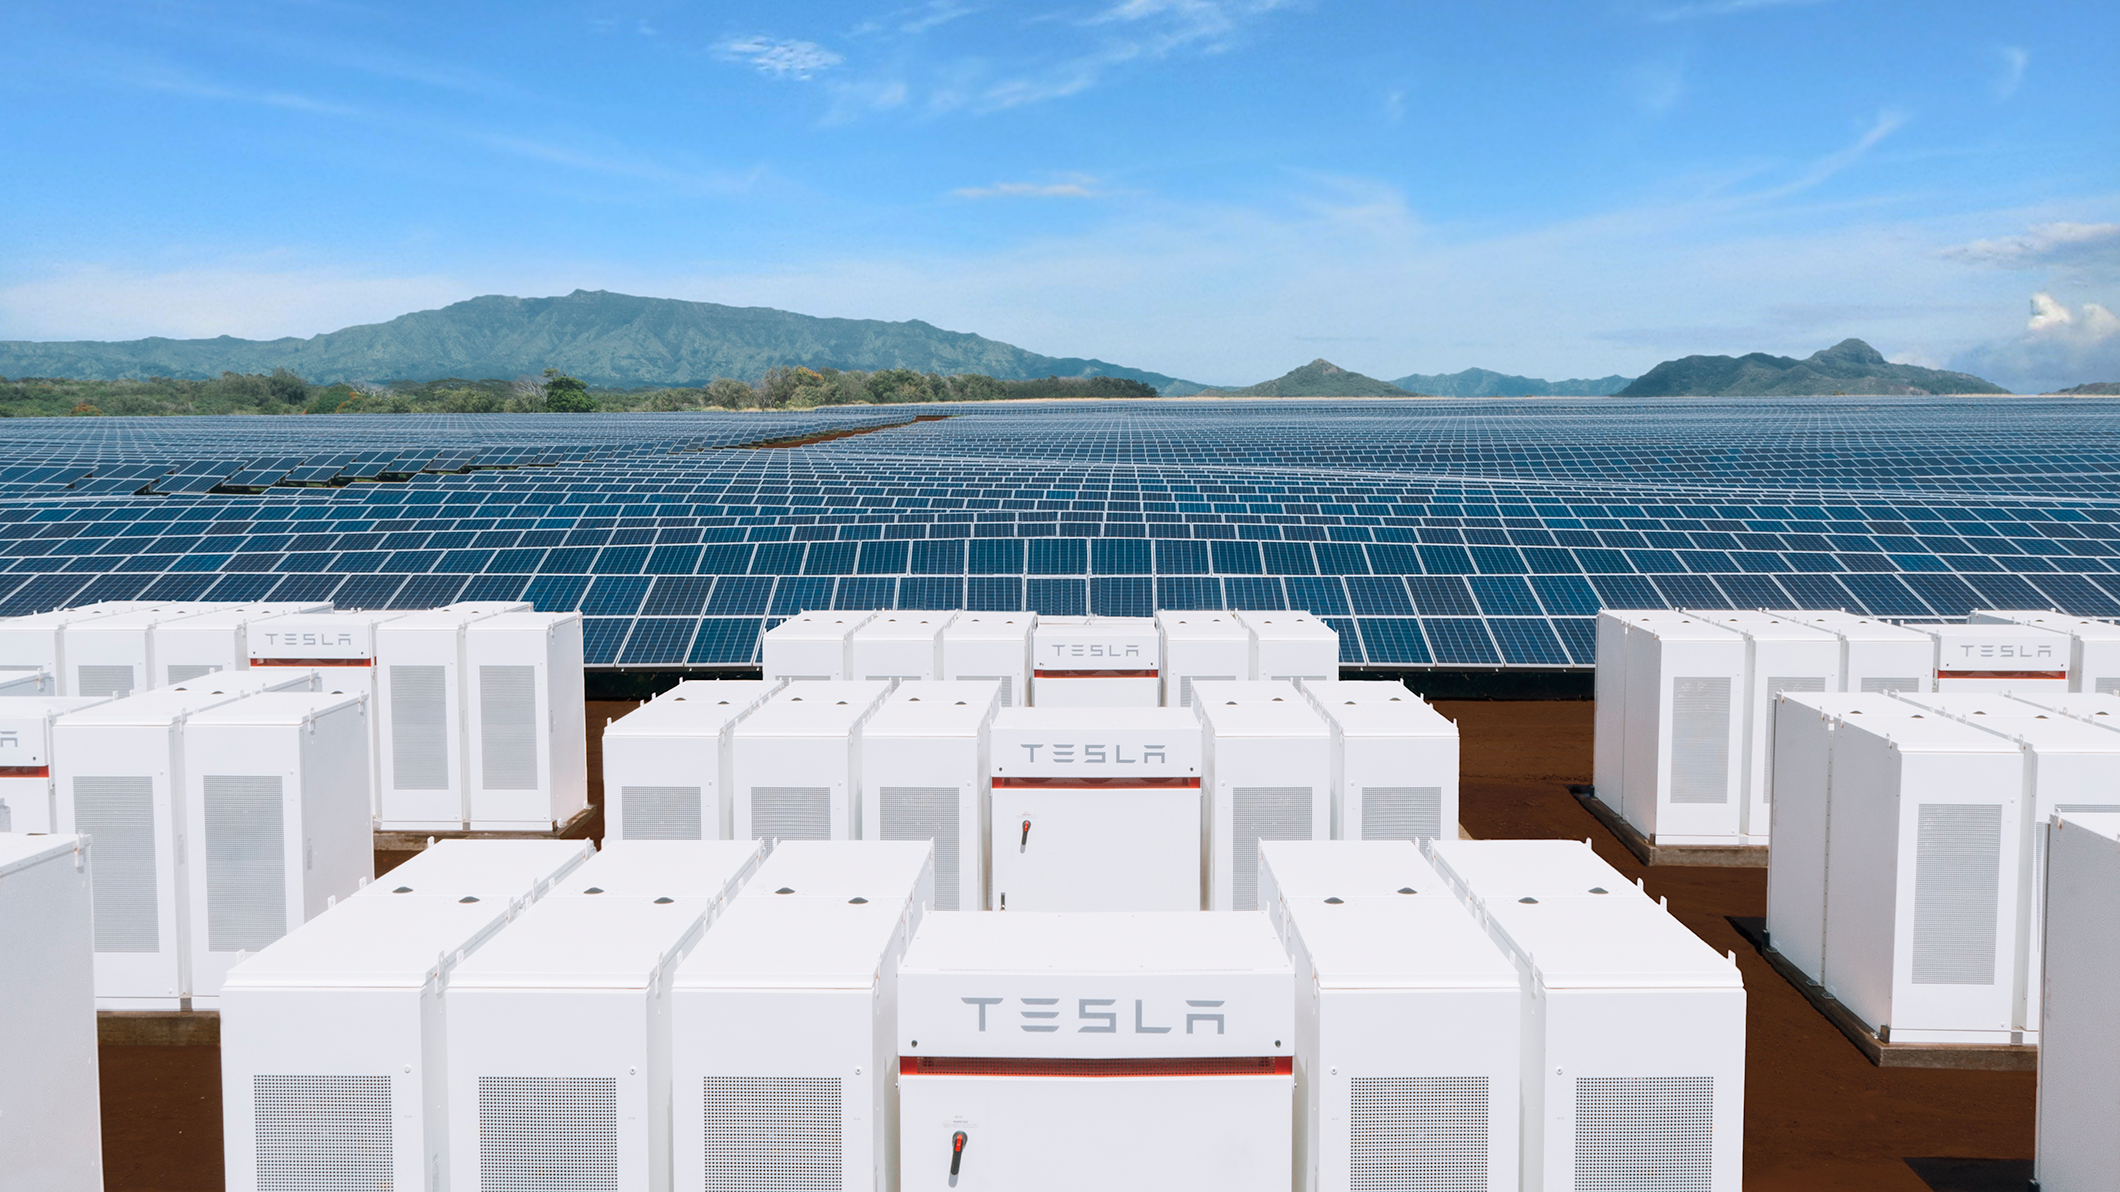 electrek.co - Fred Lambert - Tesla proposes microgrids with solar and batteries to power Greek islands